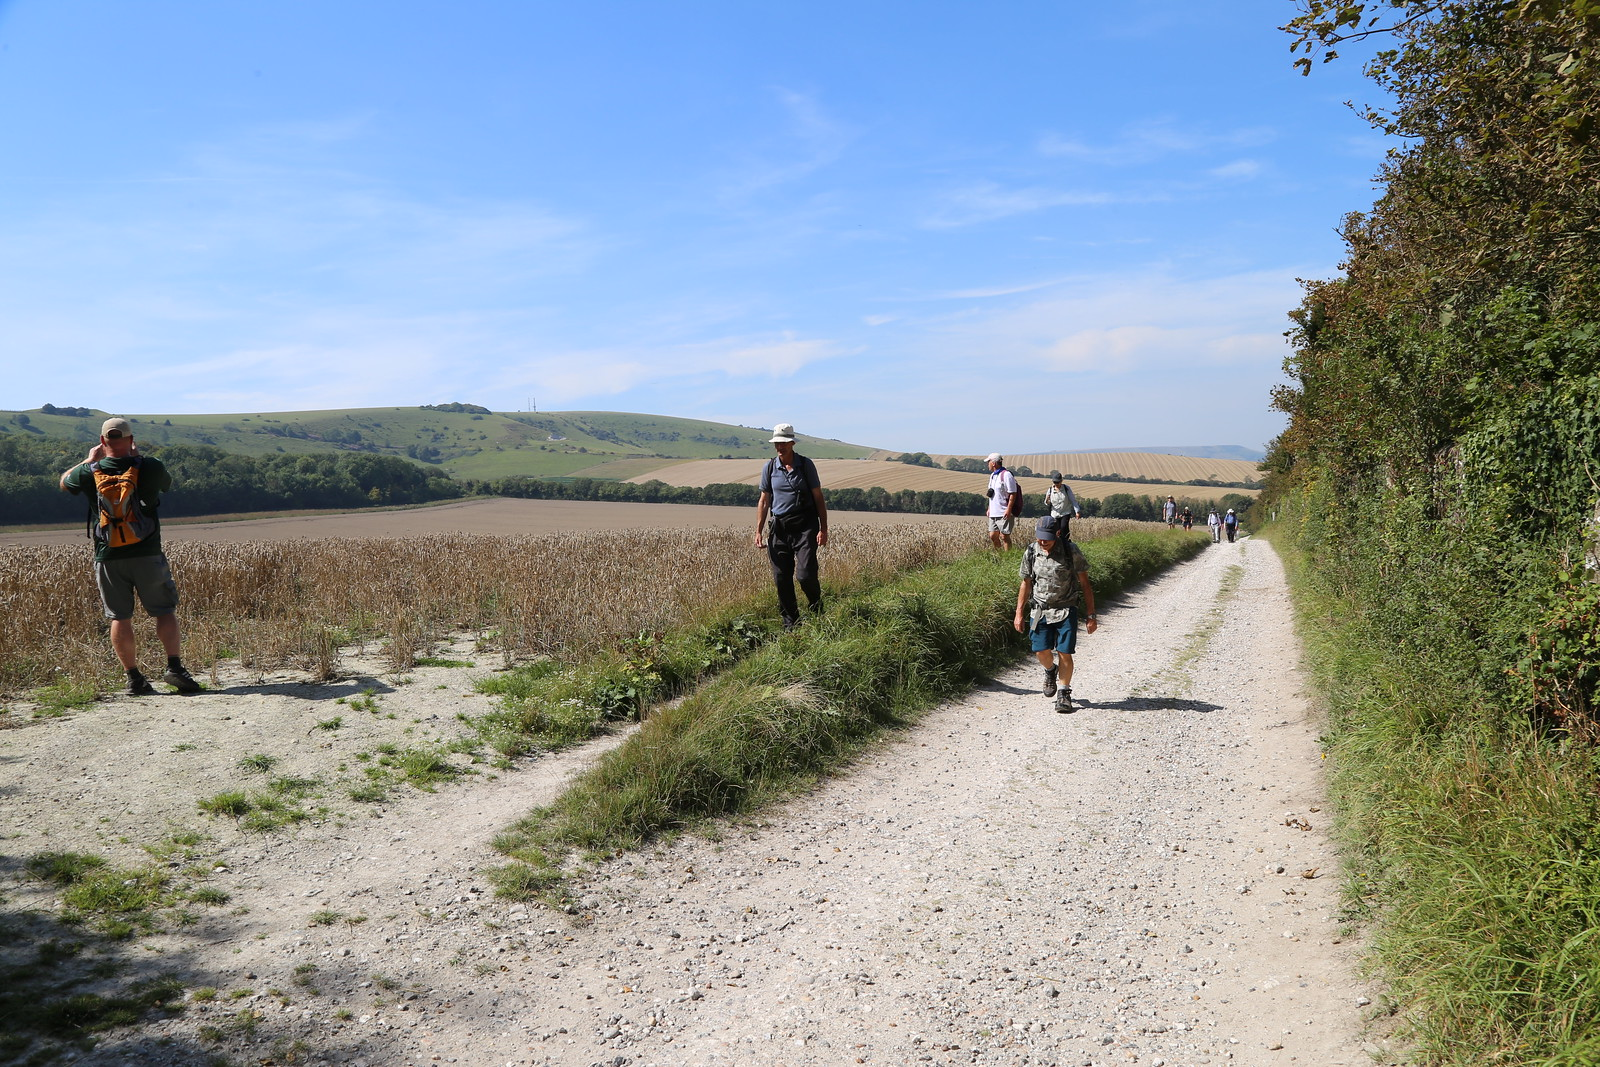 Walking on a chalky road - Firle